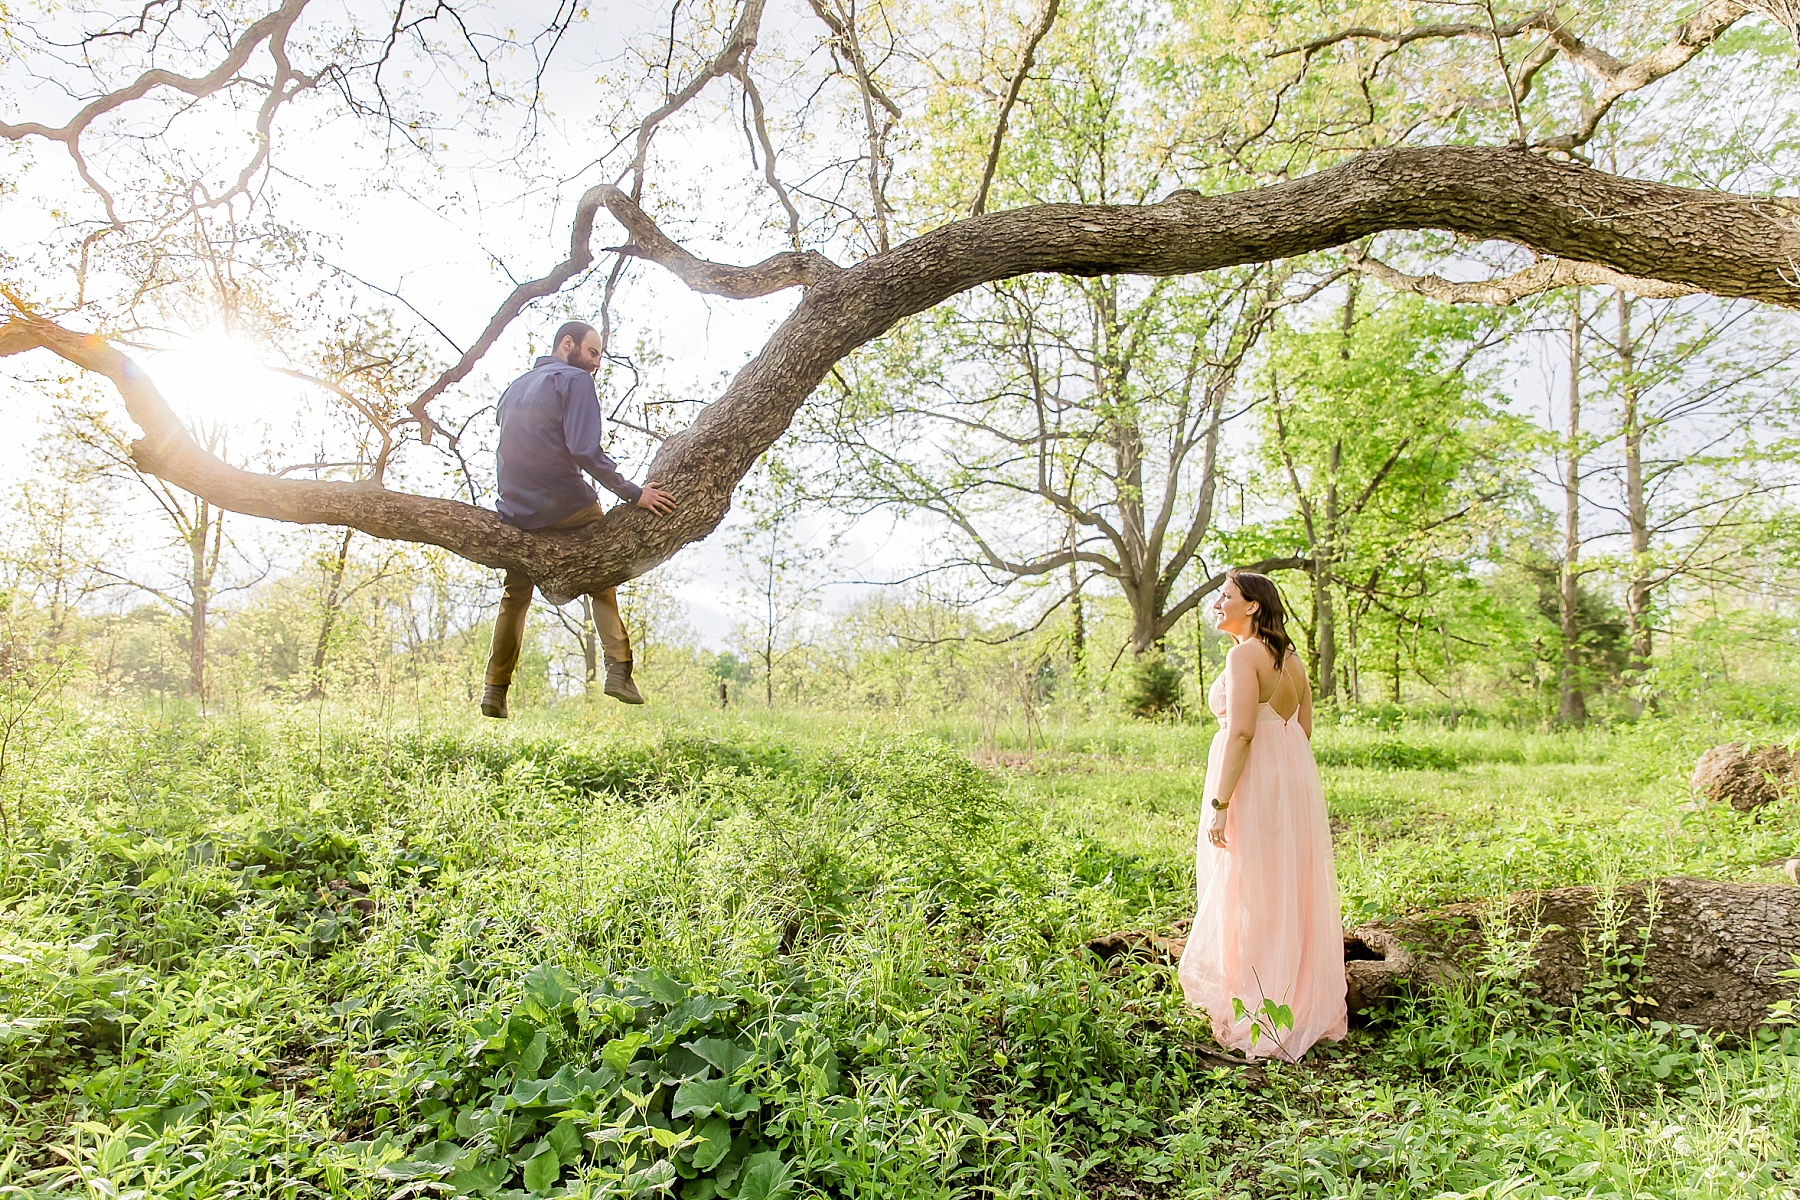 monticello indiana wedding engagement photography simple adventure weird_0028.jpg